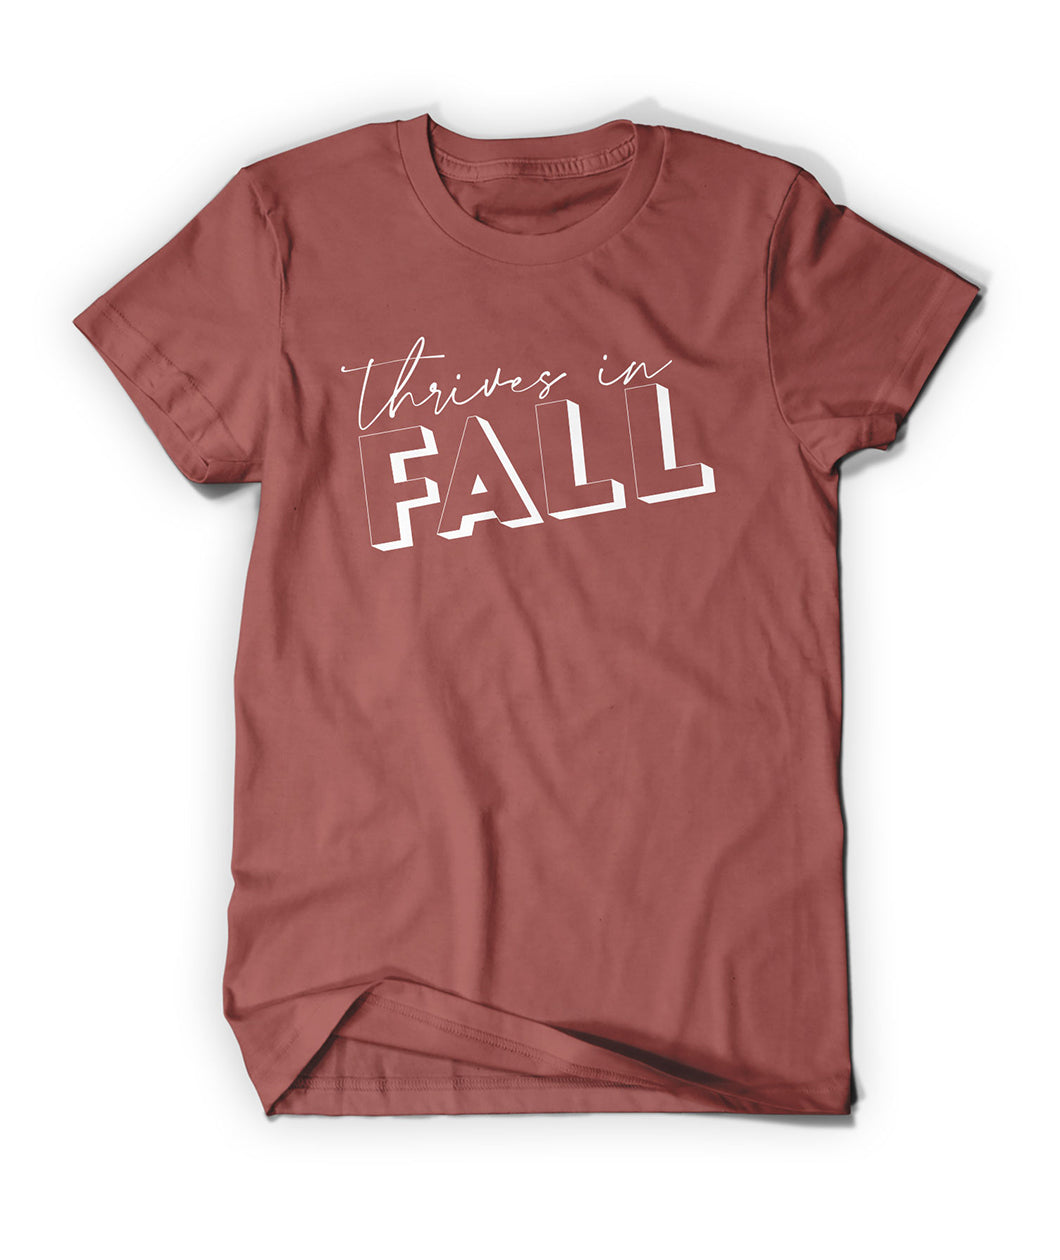 Thrives In Fall Shirt